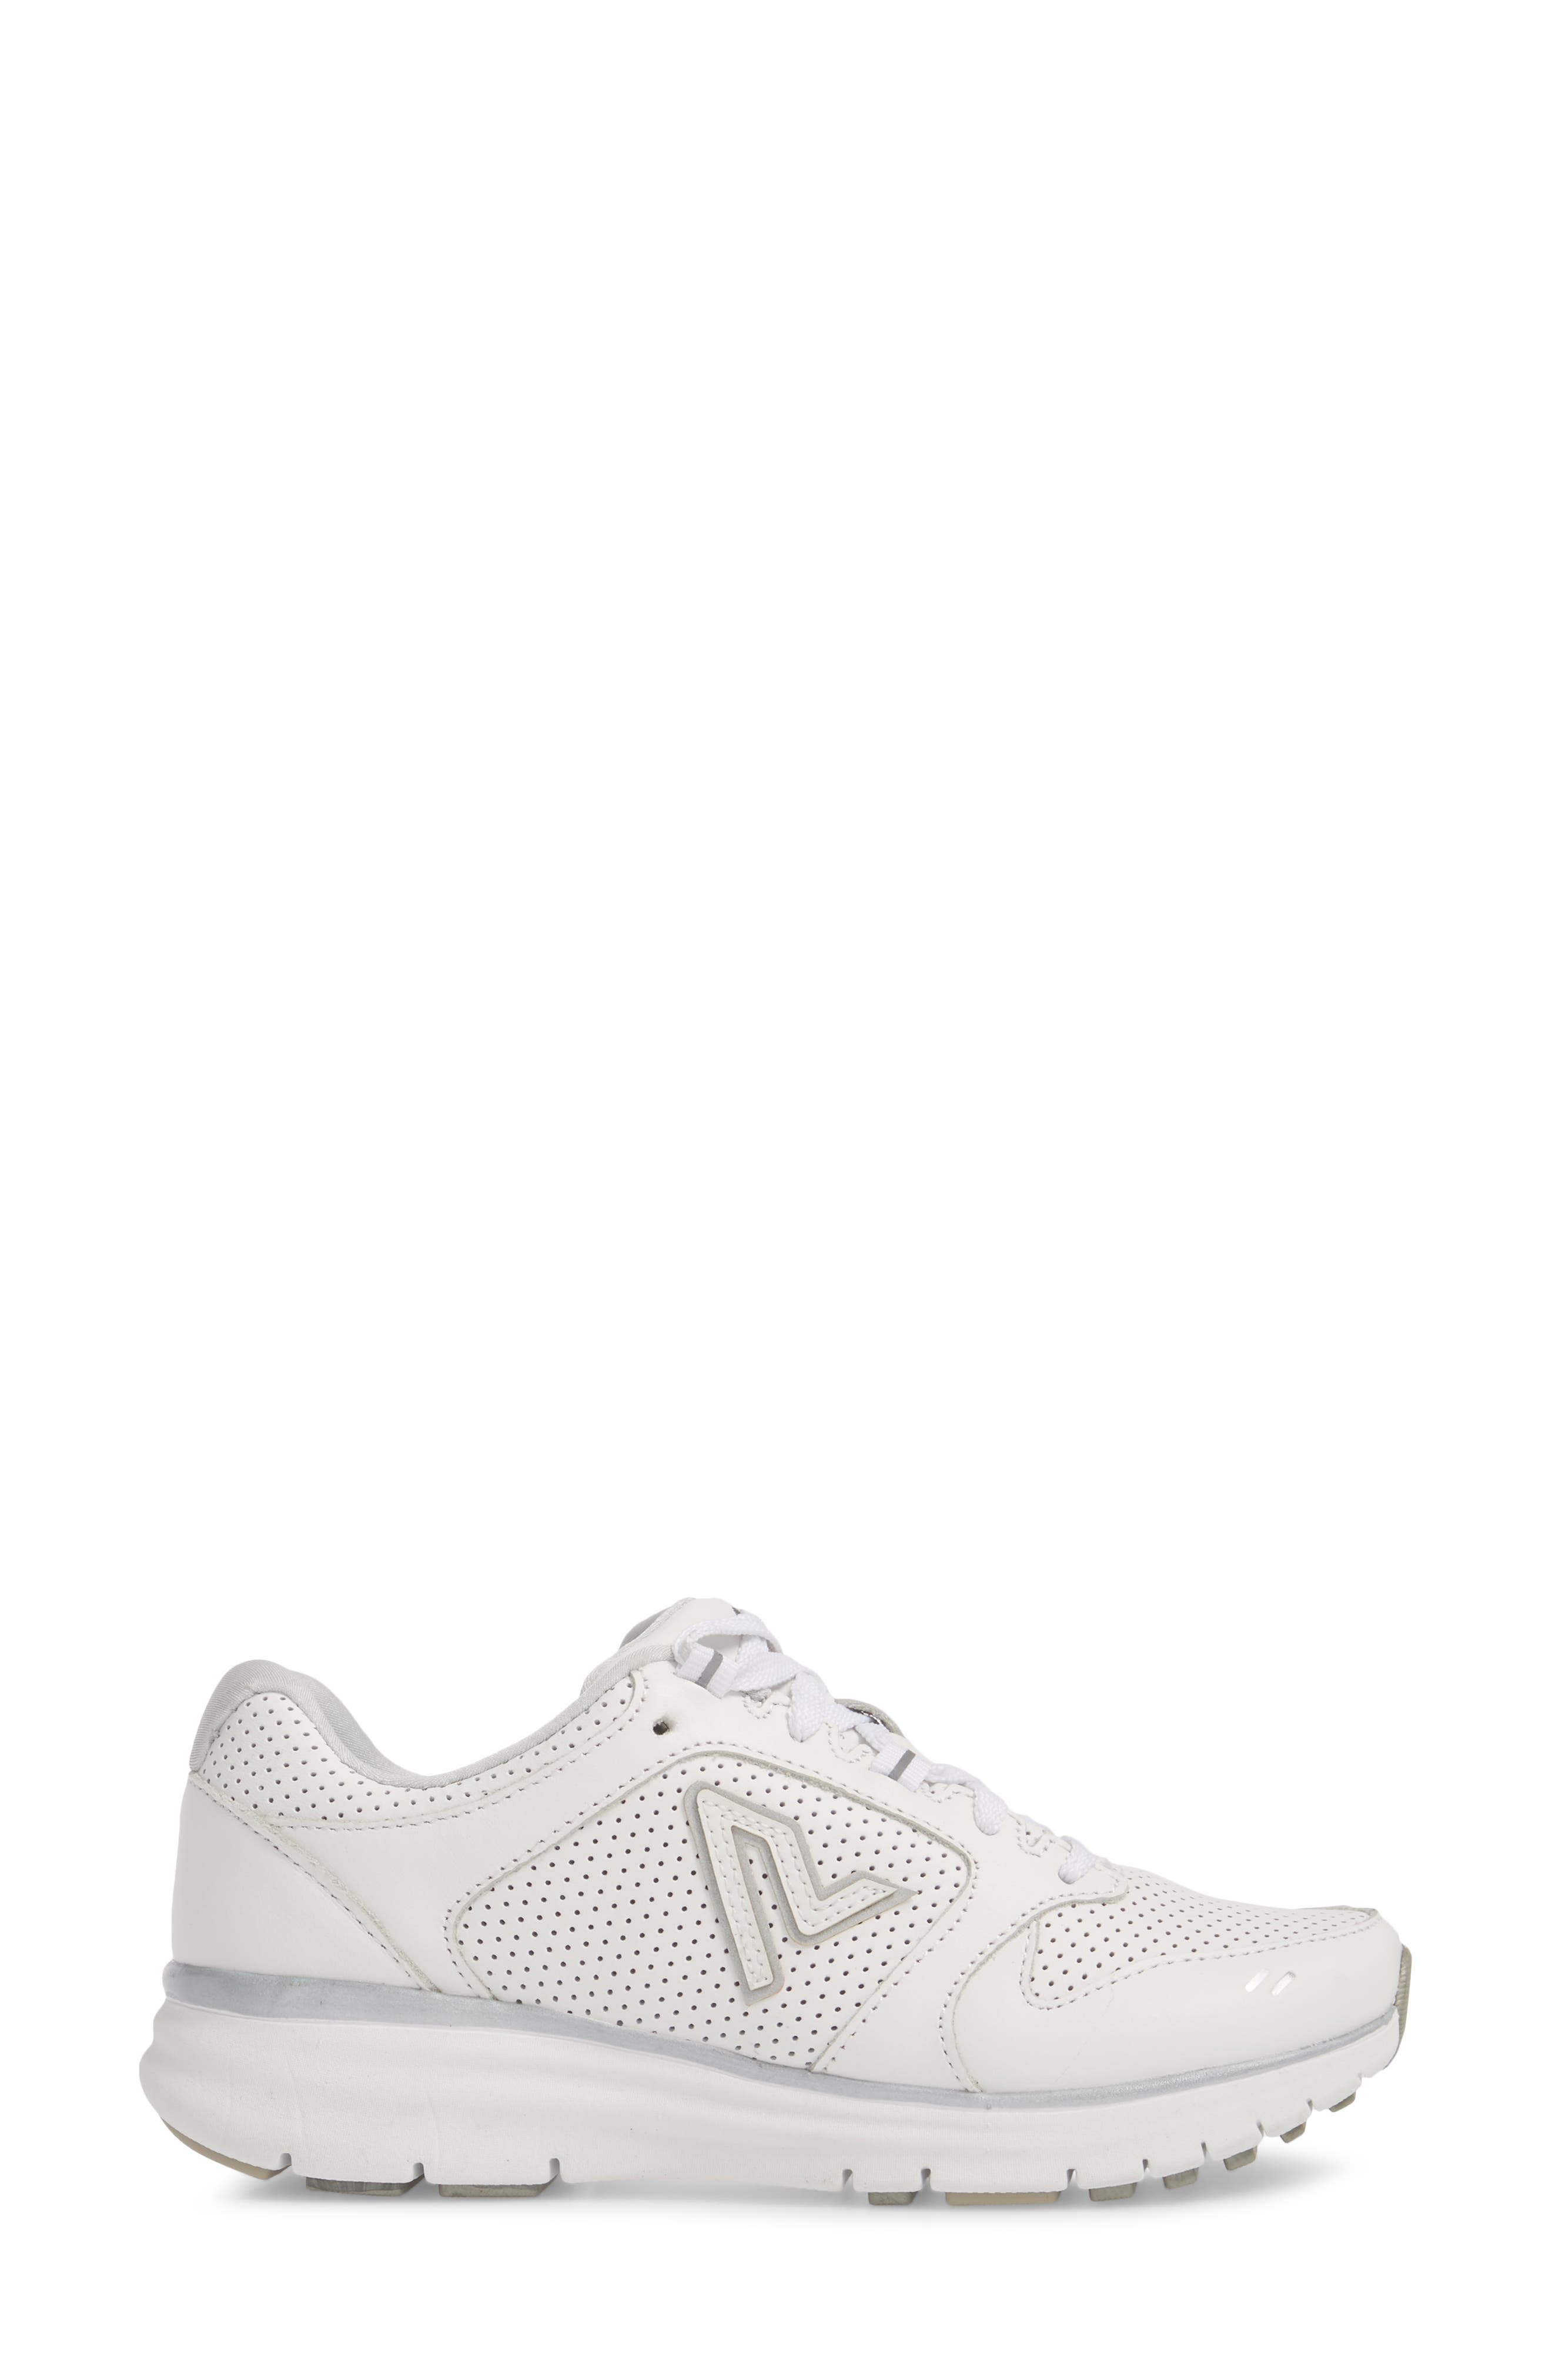 Thrill Sneaker,                             Alternate thumbnail 3, color,                             White Suede